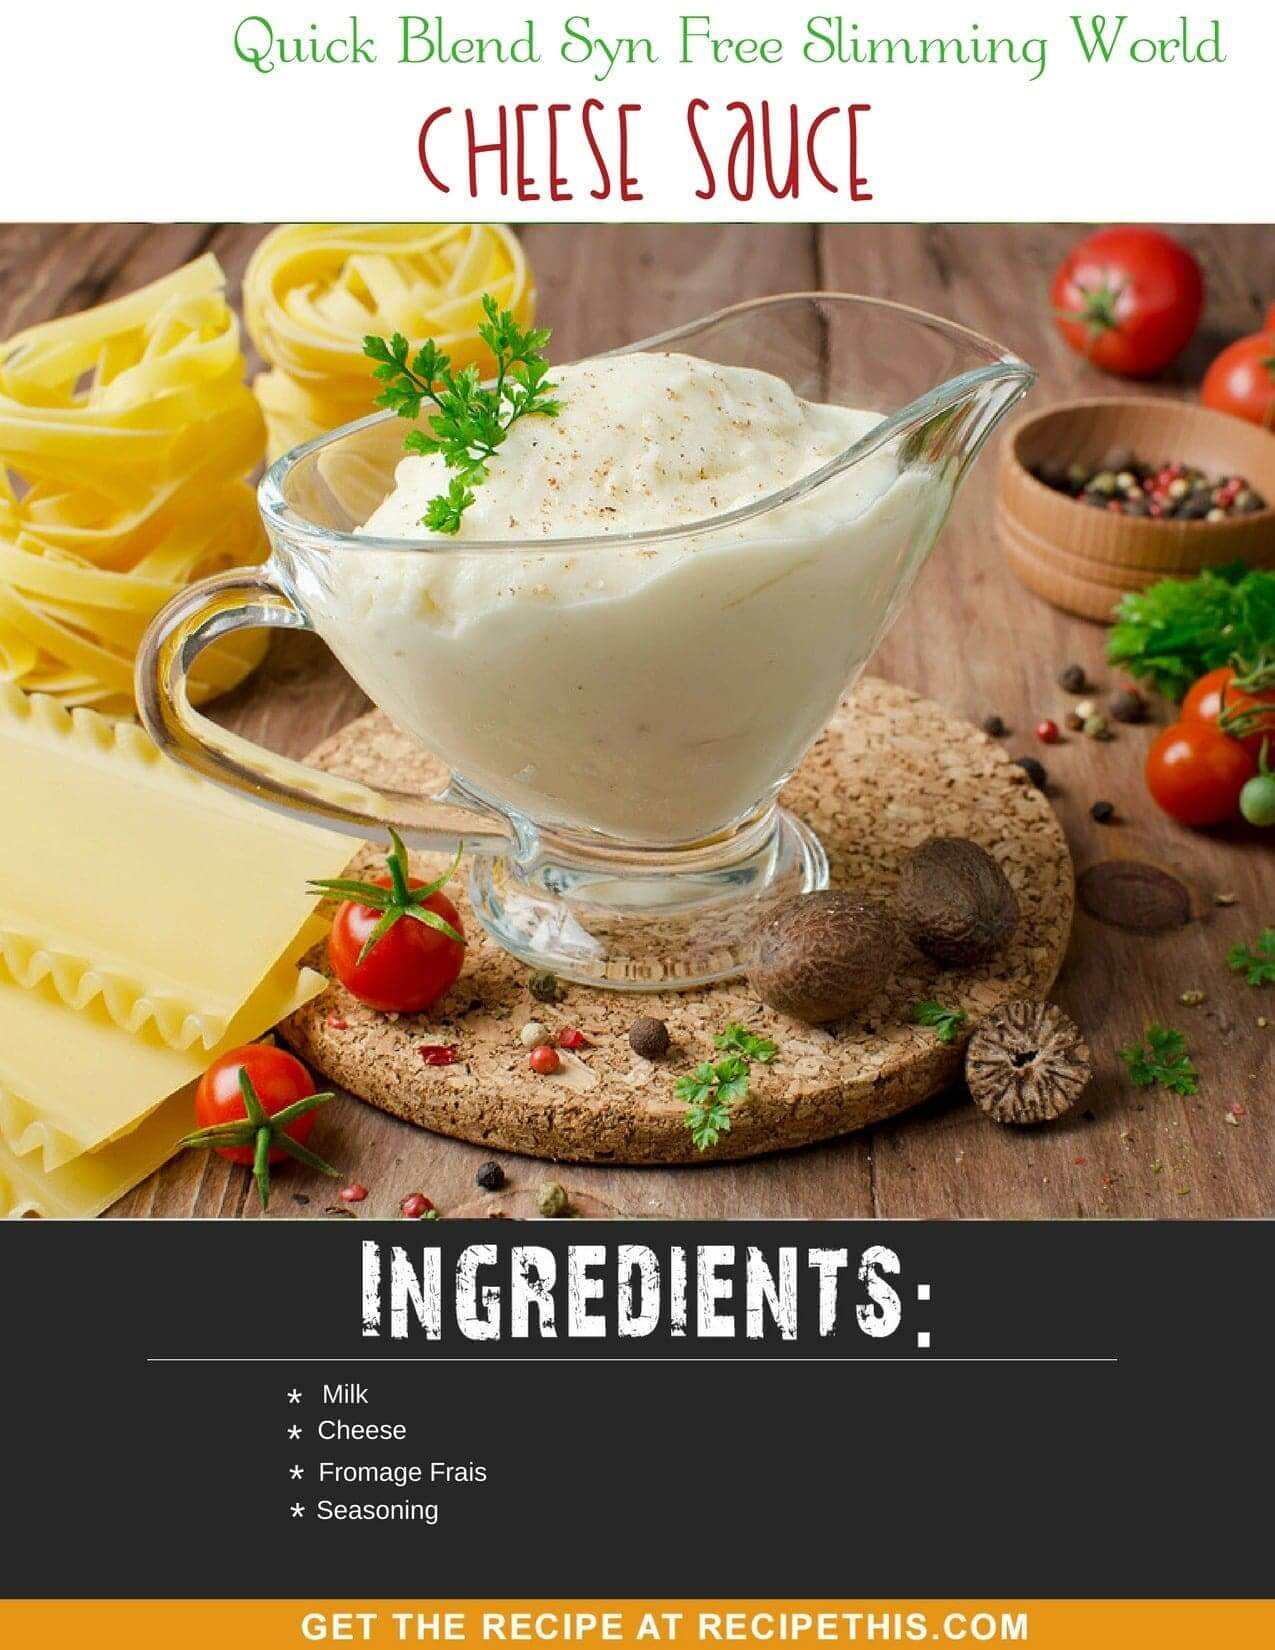 Blender Recipes | Quick Blend Syn Free Slimming World Cheese Sauce recipe from RecipeThis.com